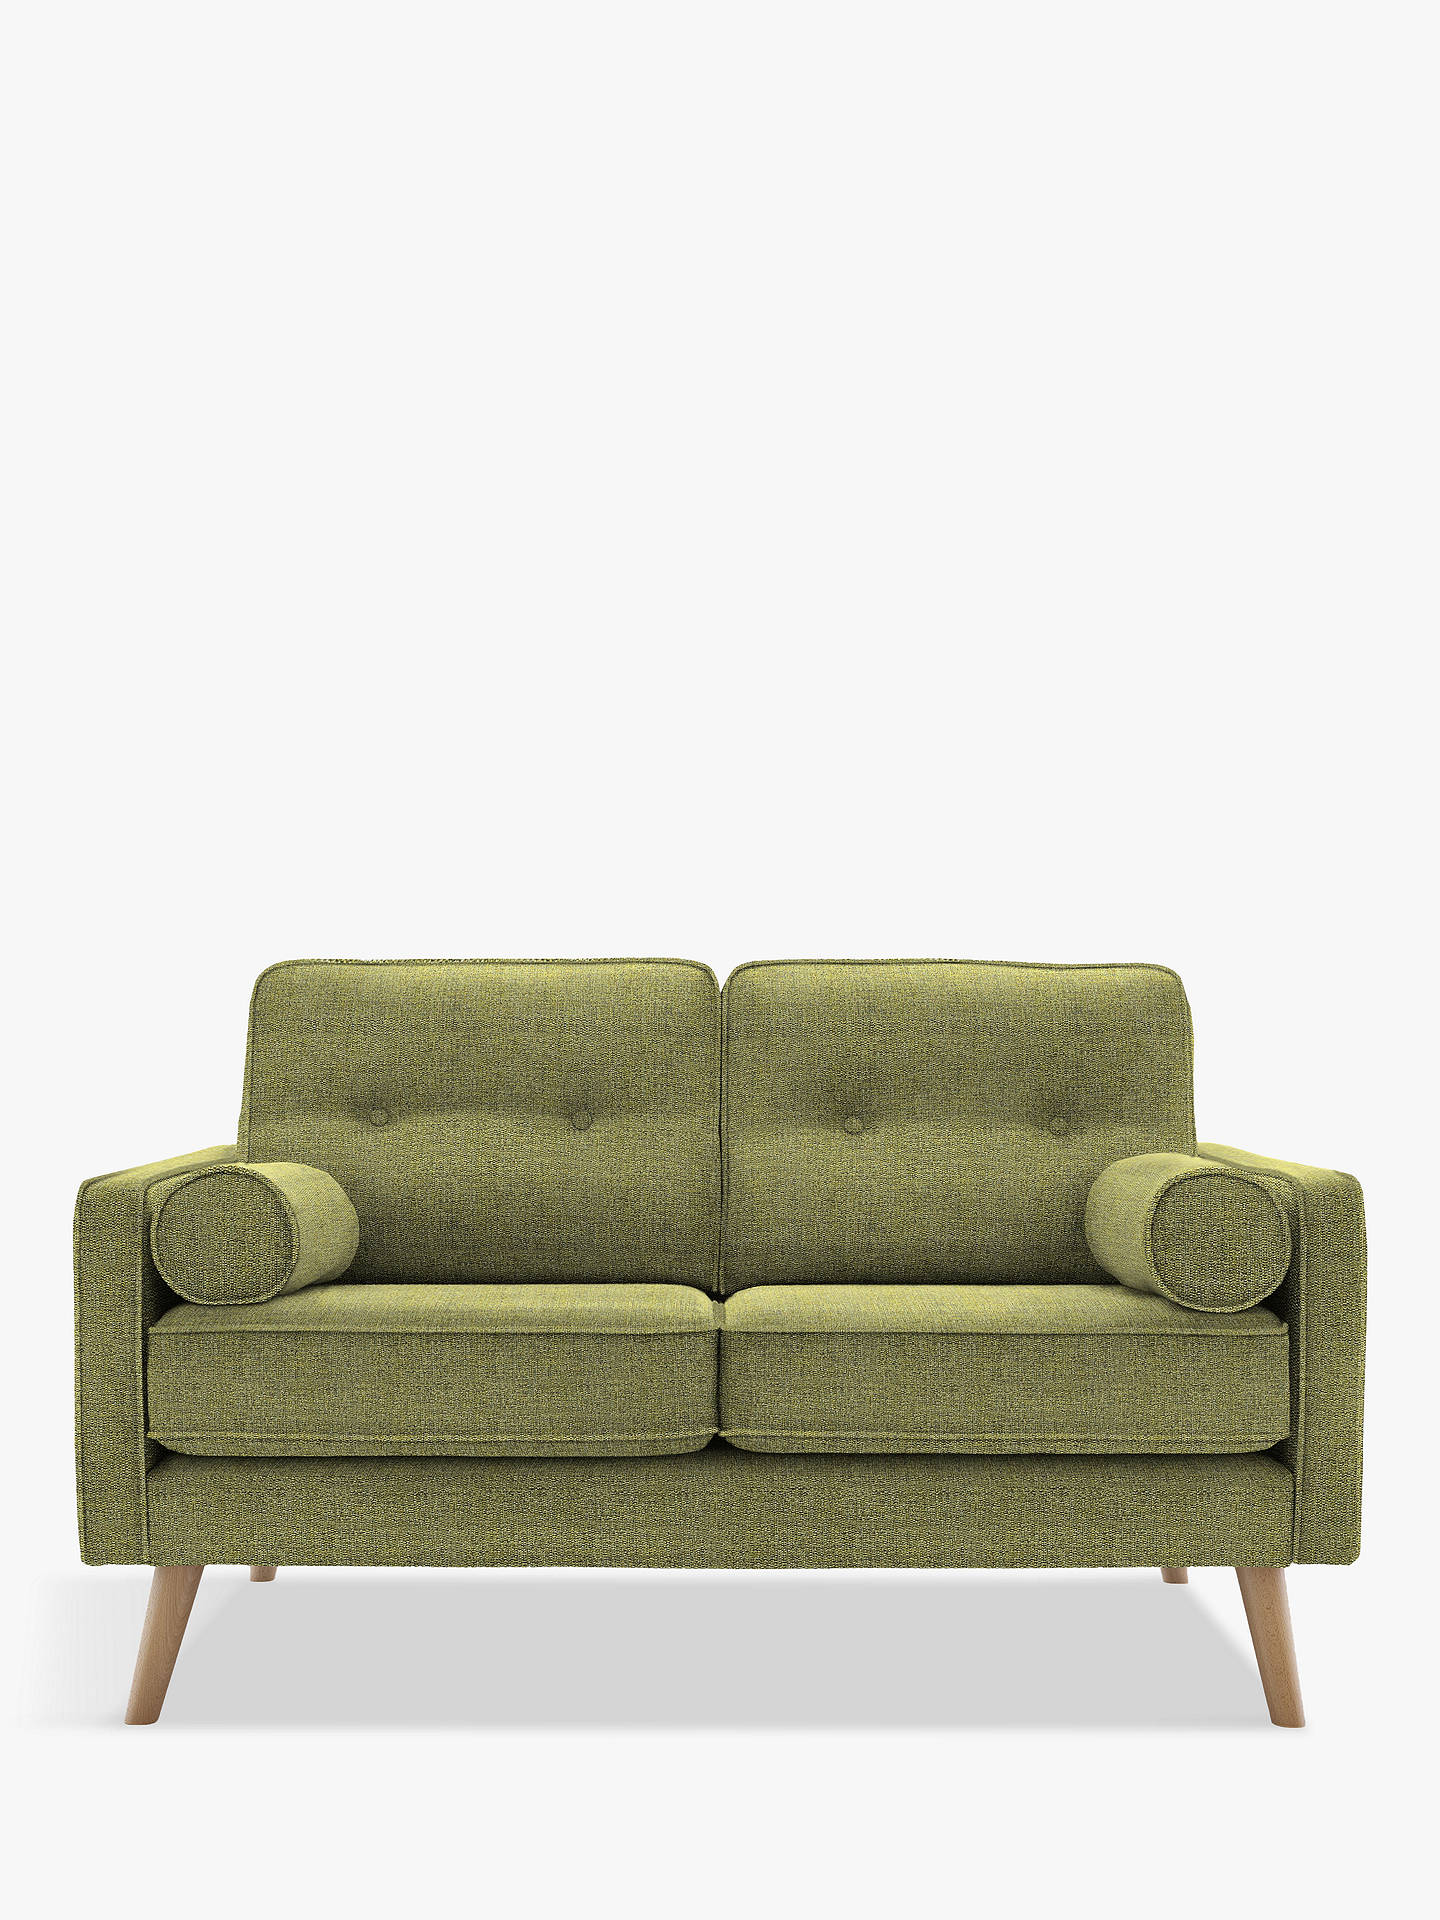 G Plan Vintage The Sixty Five Small 2 Seater Sofa Ash Leg